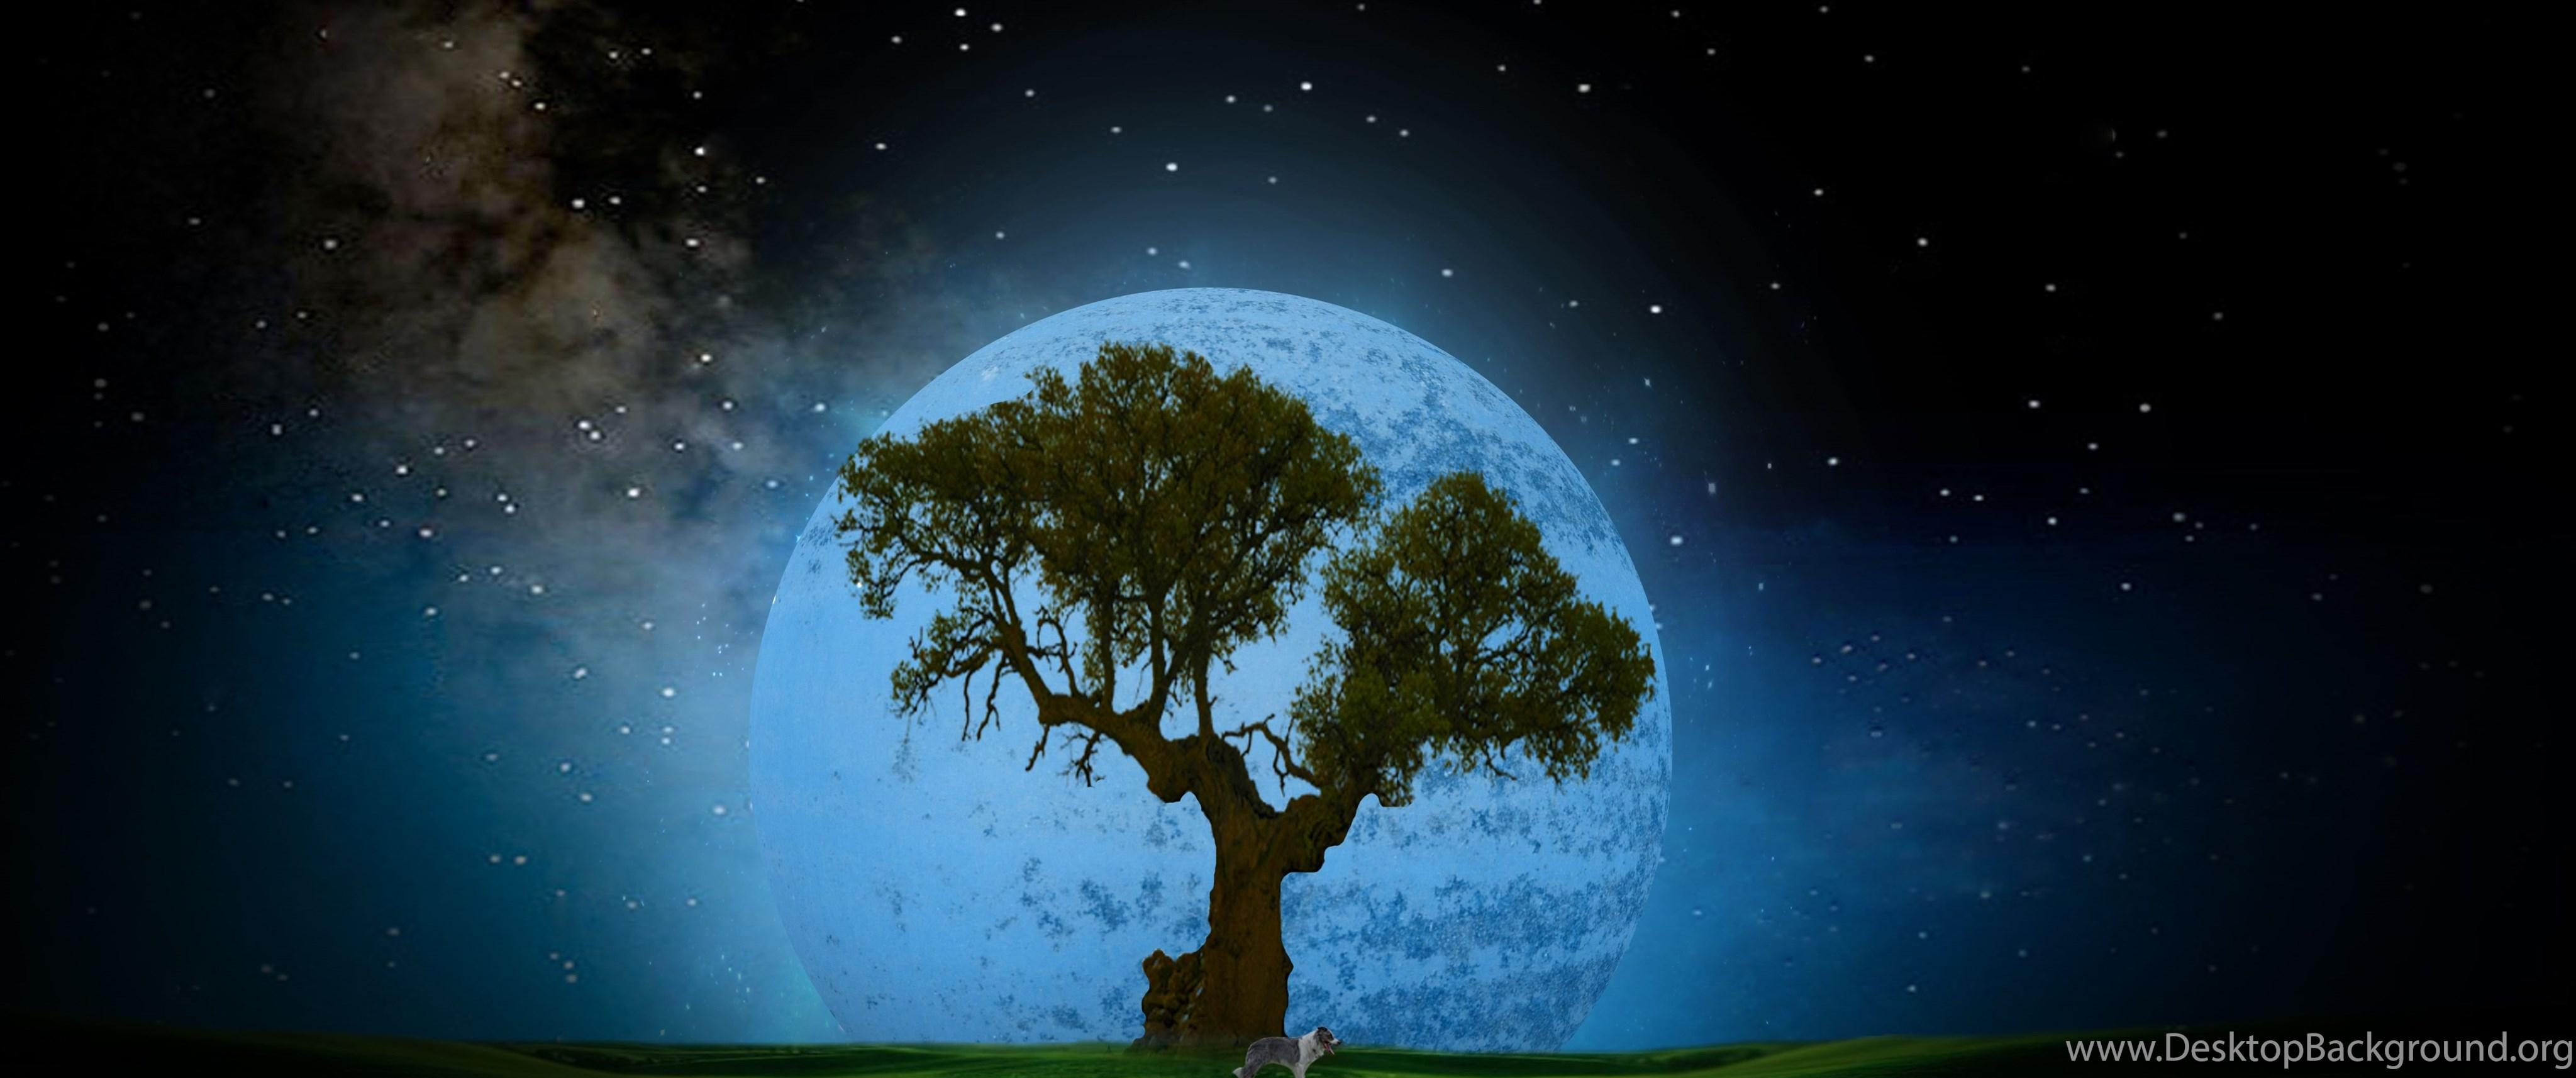 Tree At Night Desktop HD Wallpapers 4469 Amazing Wallpaperz Desktop